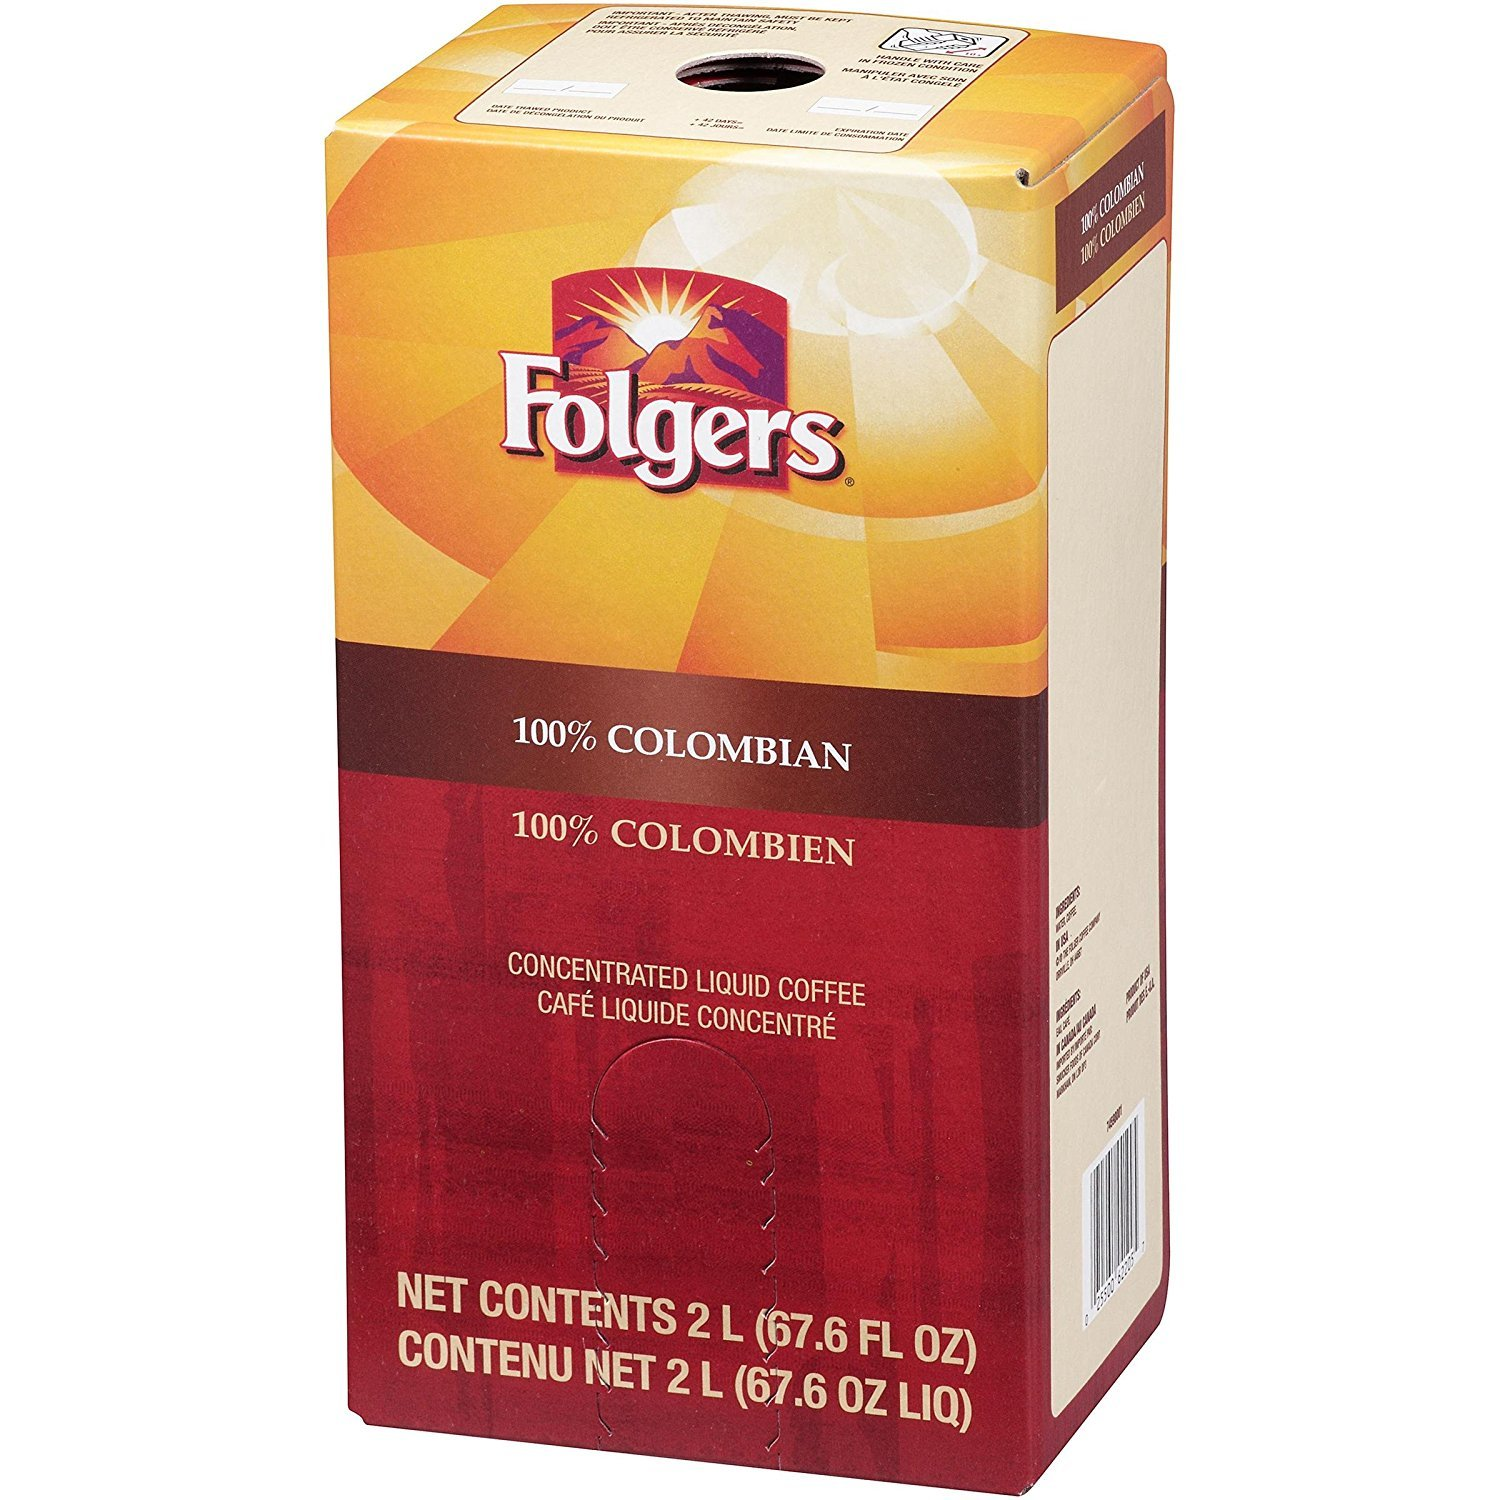 Folgers Liquid Coffee - 100% Colombian 1 box 2 Liters - Replaces Douwe Egberts (Pack of 2) Smucker' s